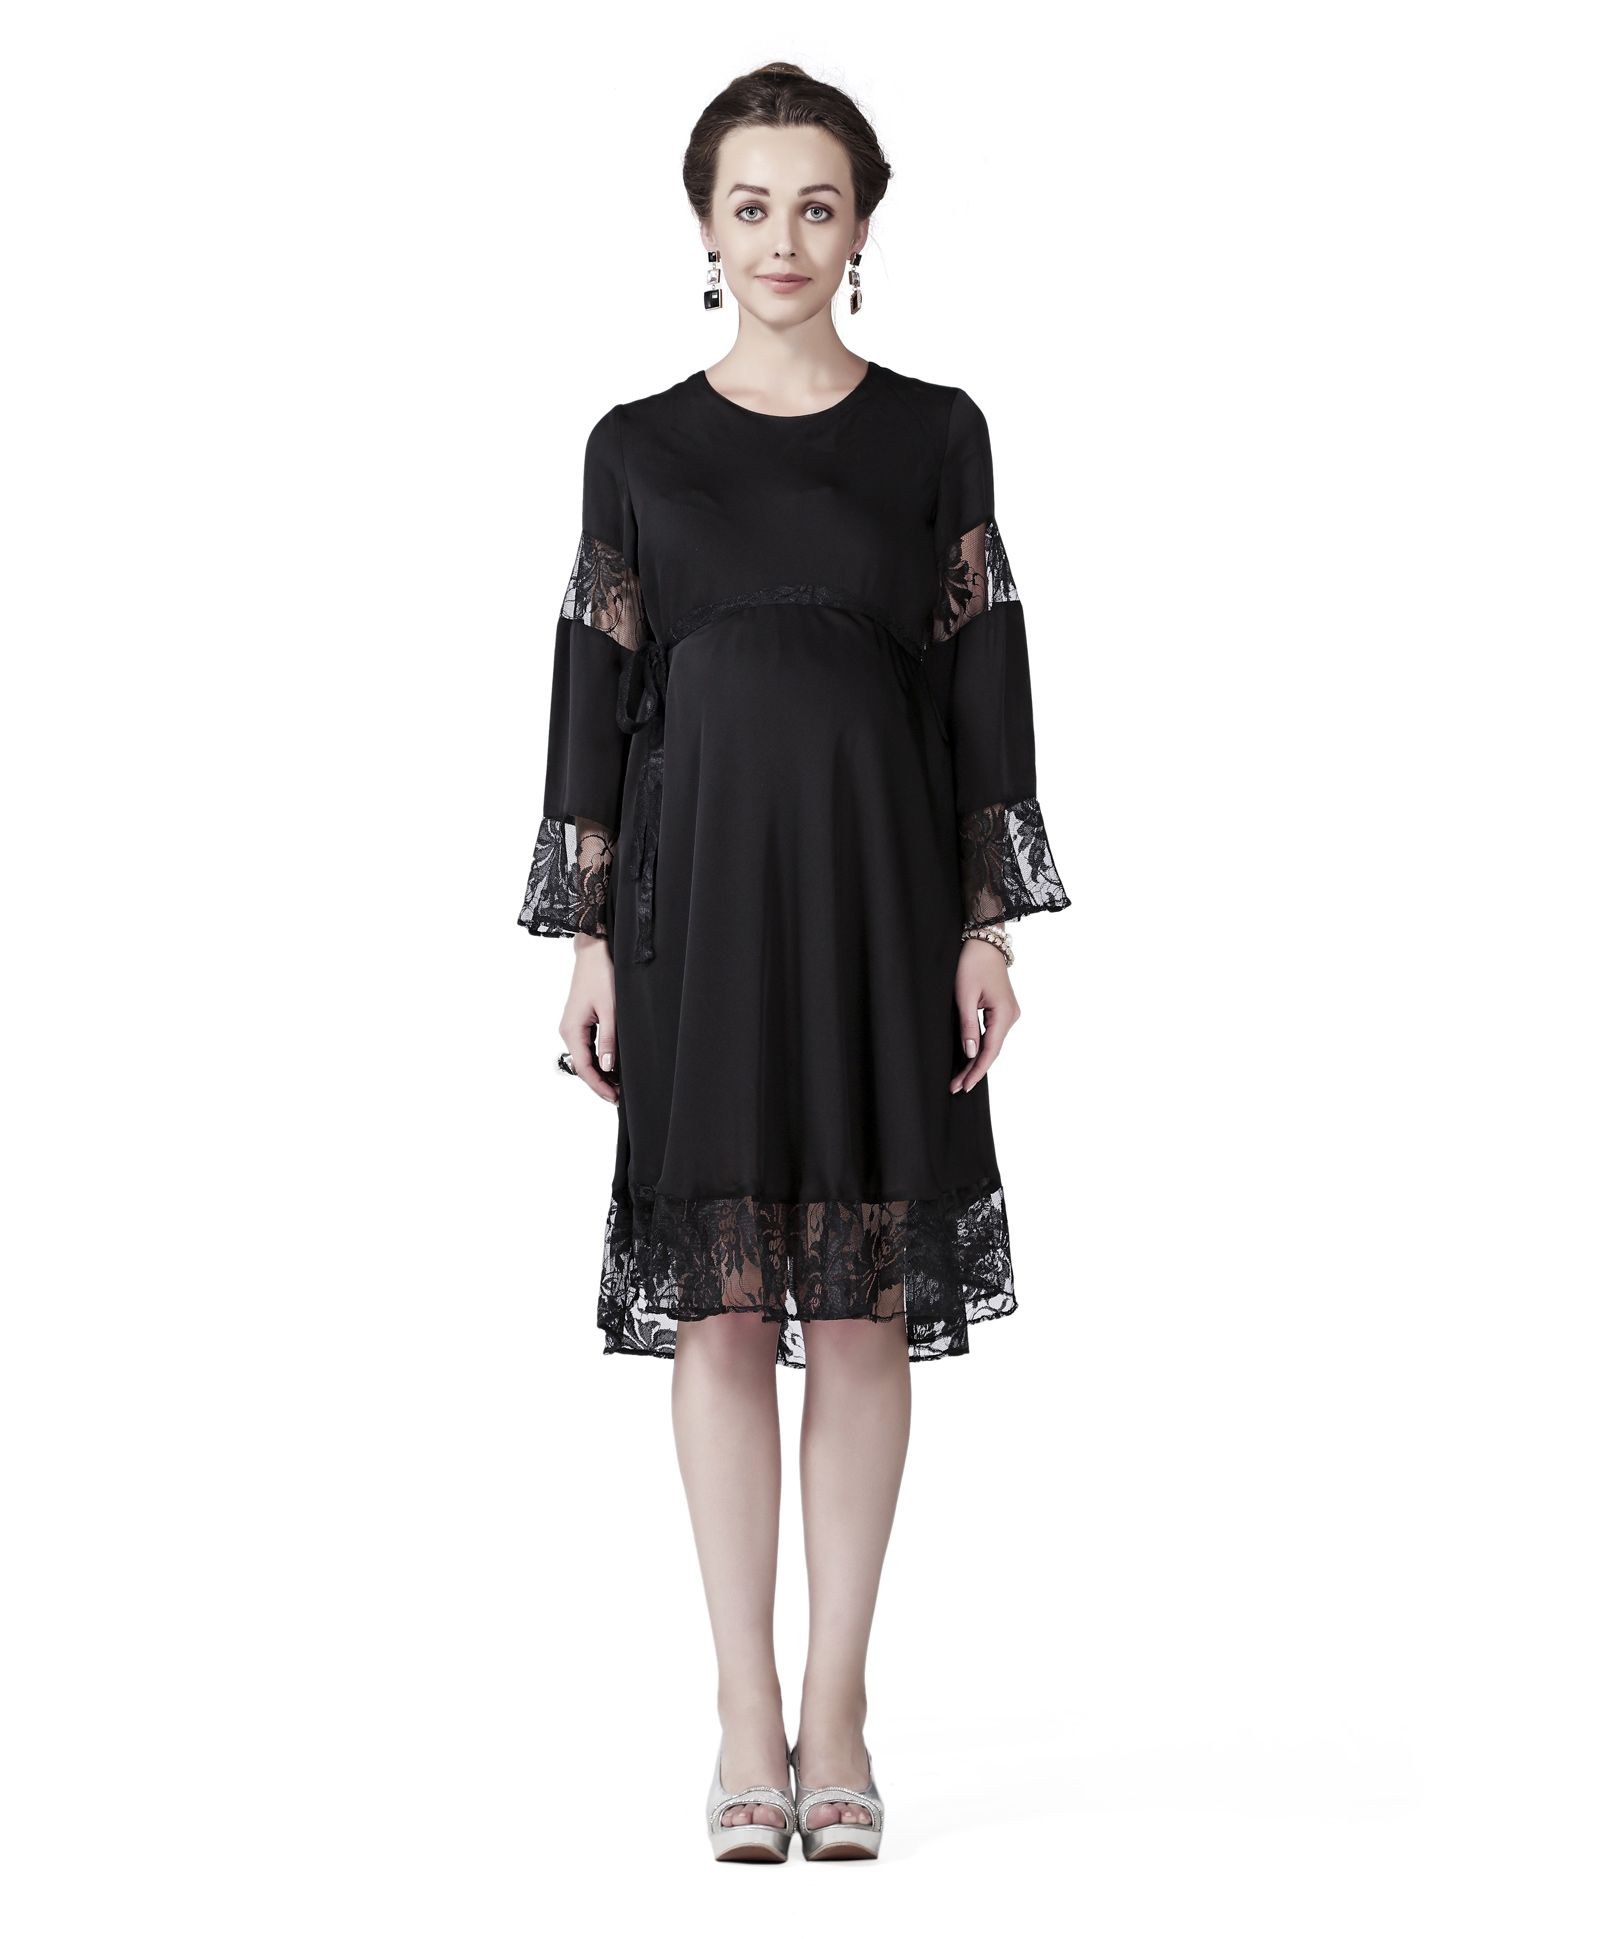 5f76fdbac9292 Innovative Pretty Lace Dress Black Online in India, Buy at Best Price from  Firstcry.com - 1981888